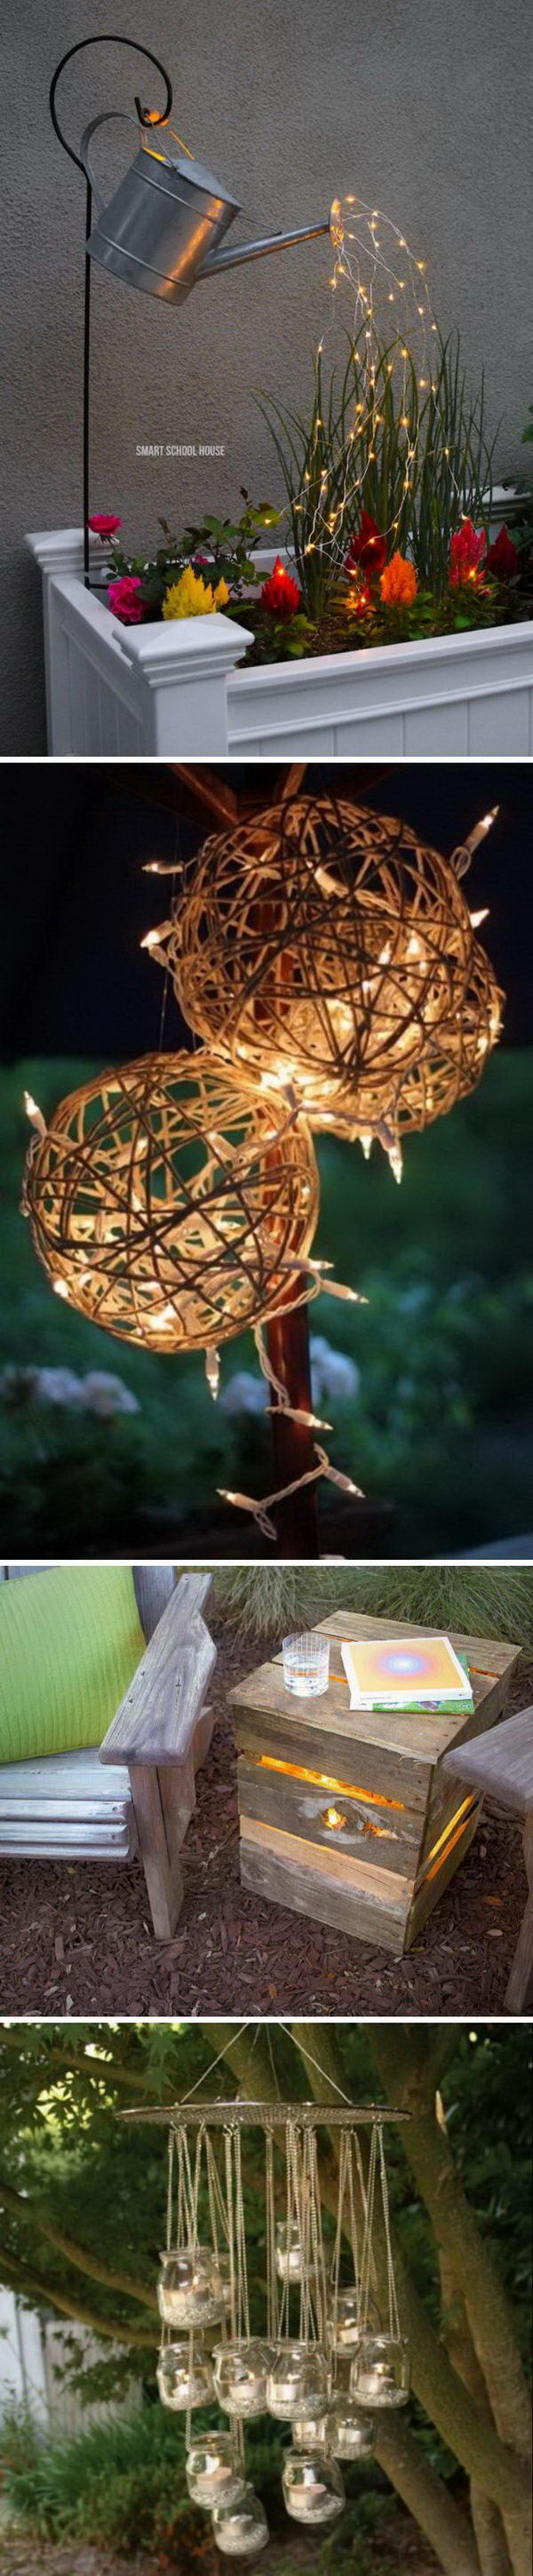 Amazing Outdoor Lighting Ideas for Your Backyard.